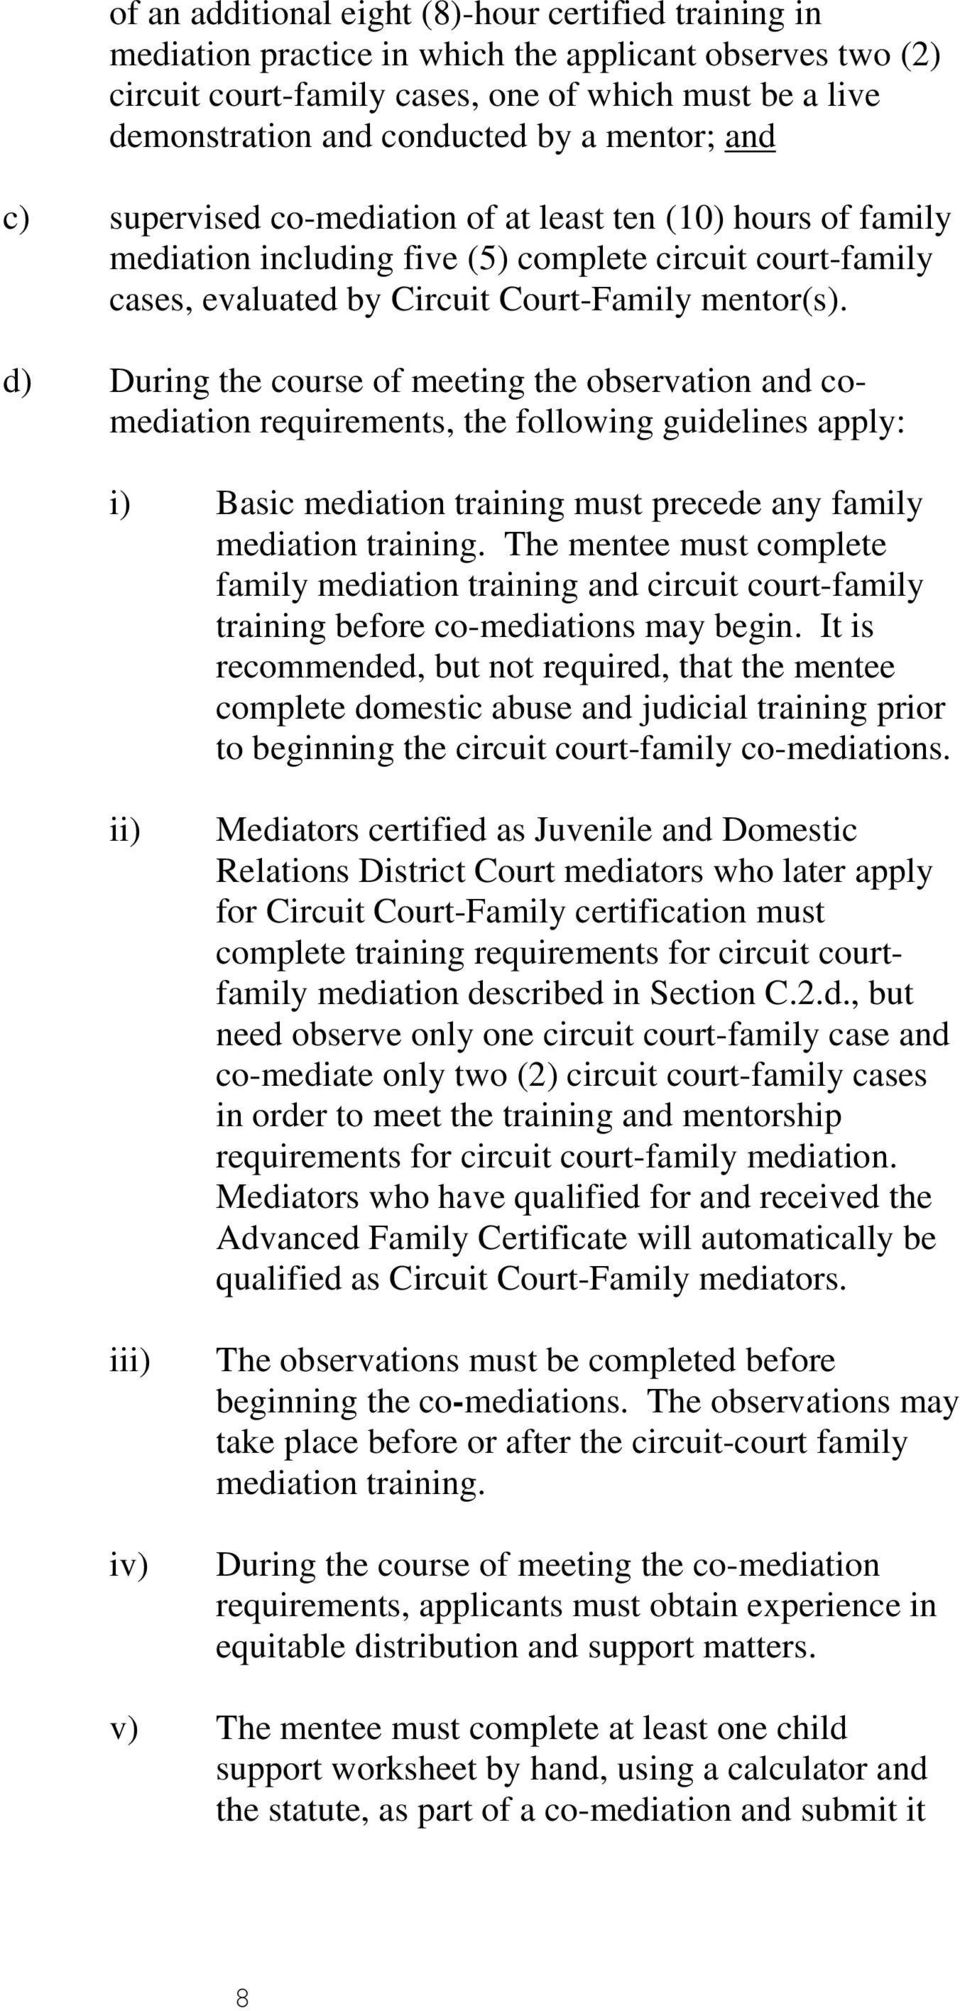 d) During the course of meeting the observation and comediation requirements, the following guidelines apply: i) Basic mediation training must precede any family mediation training.